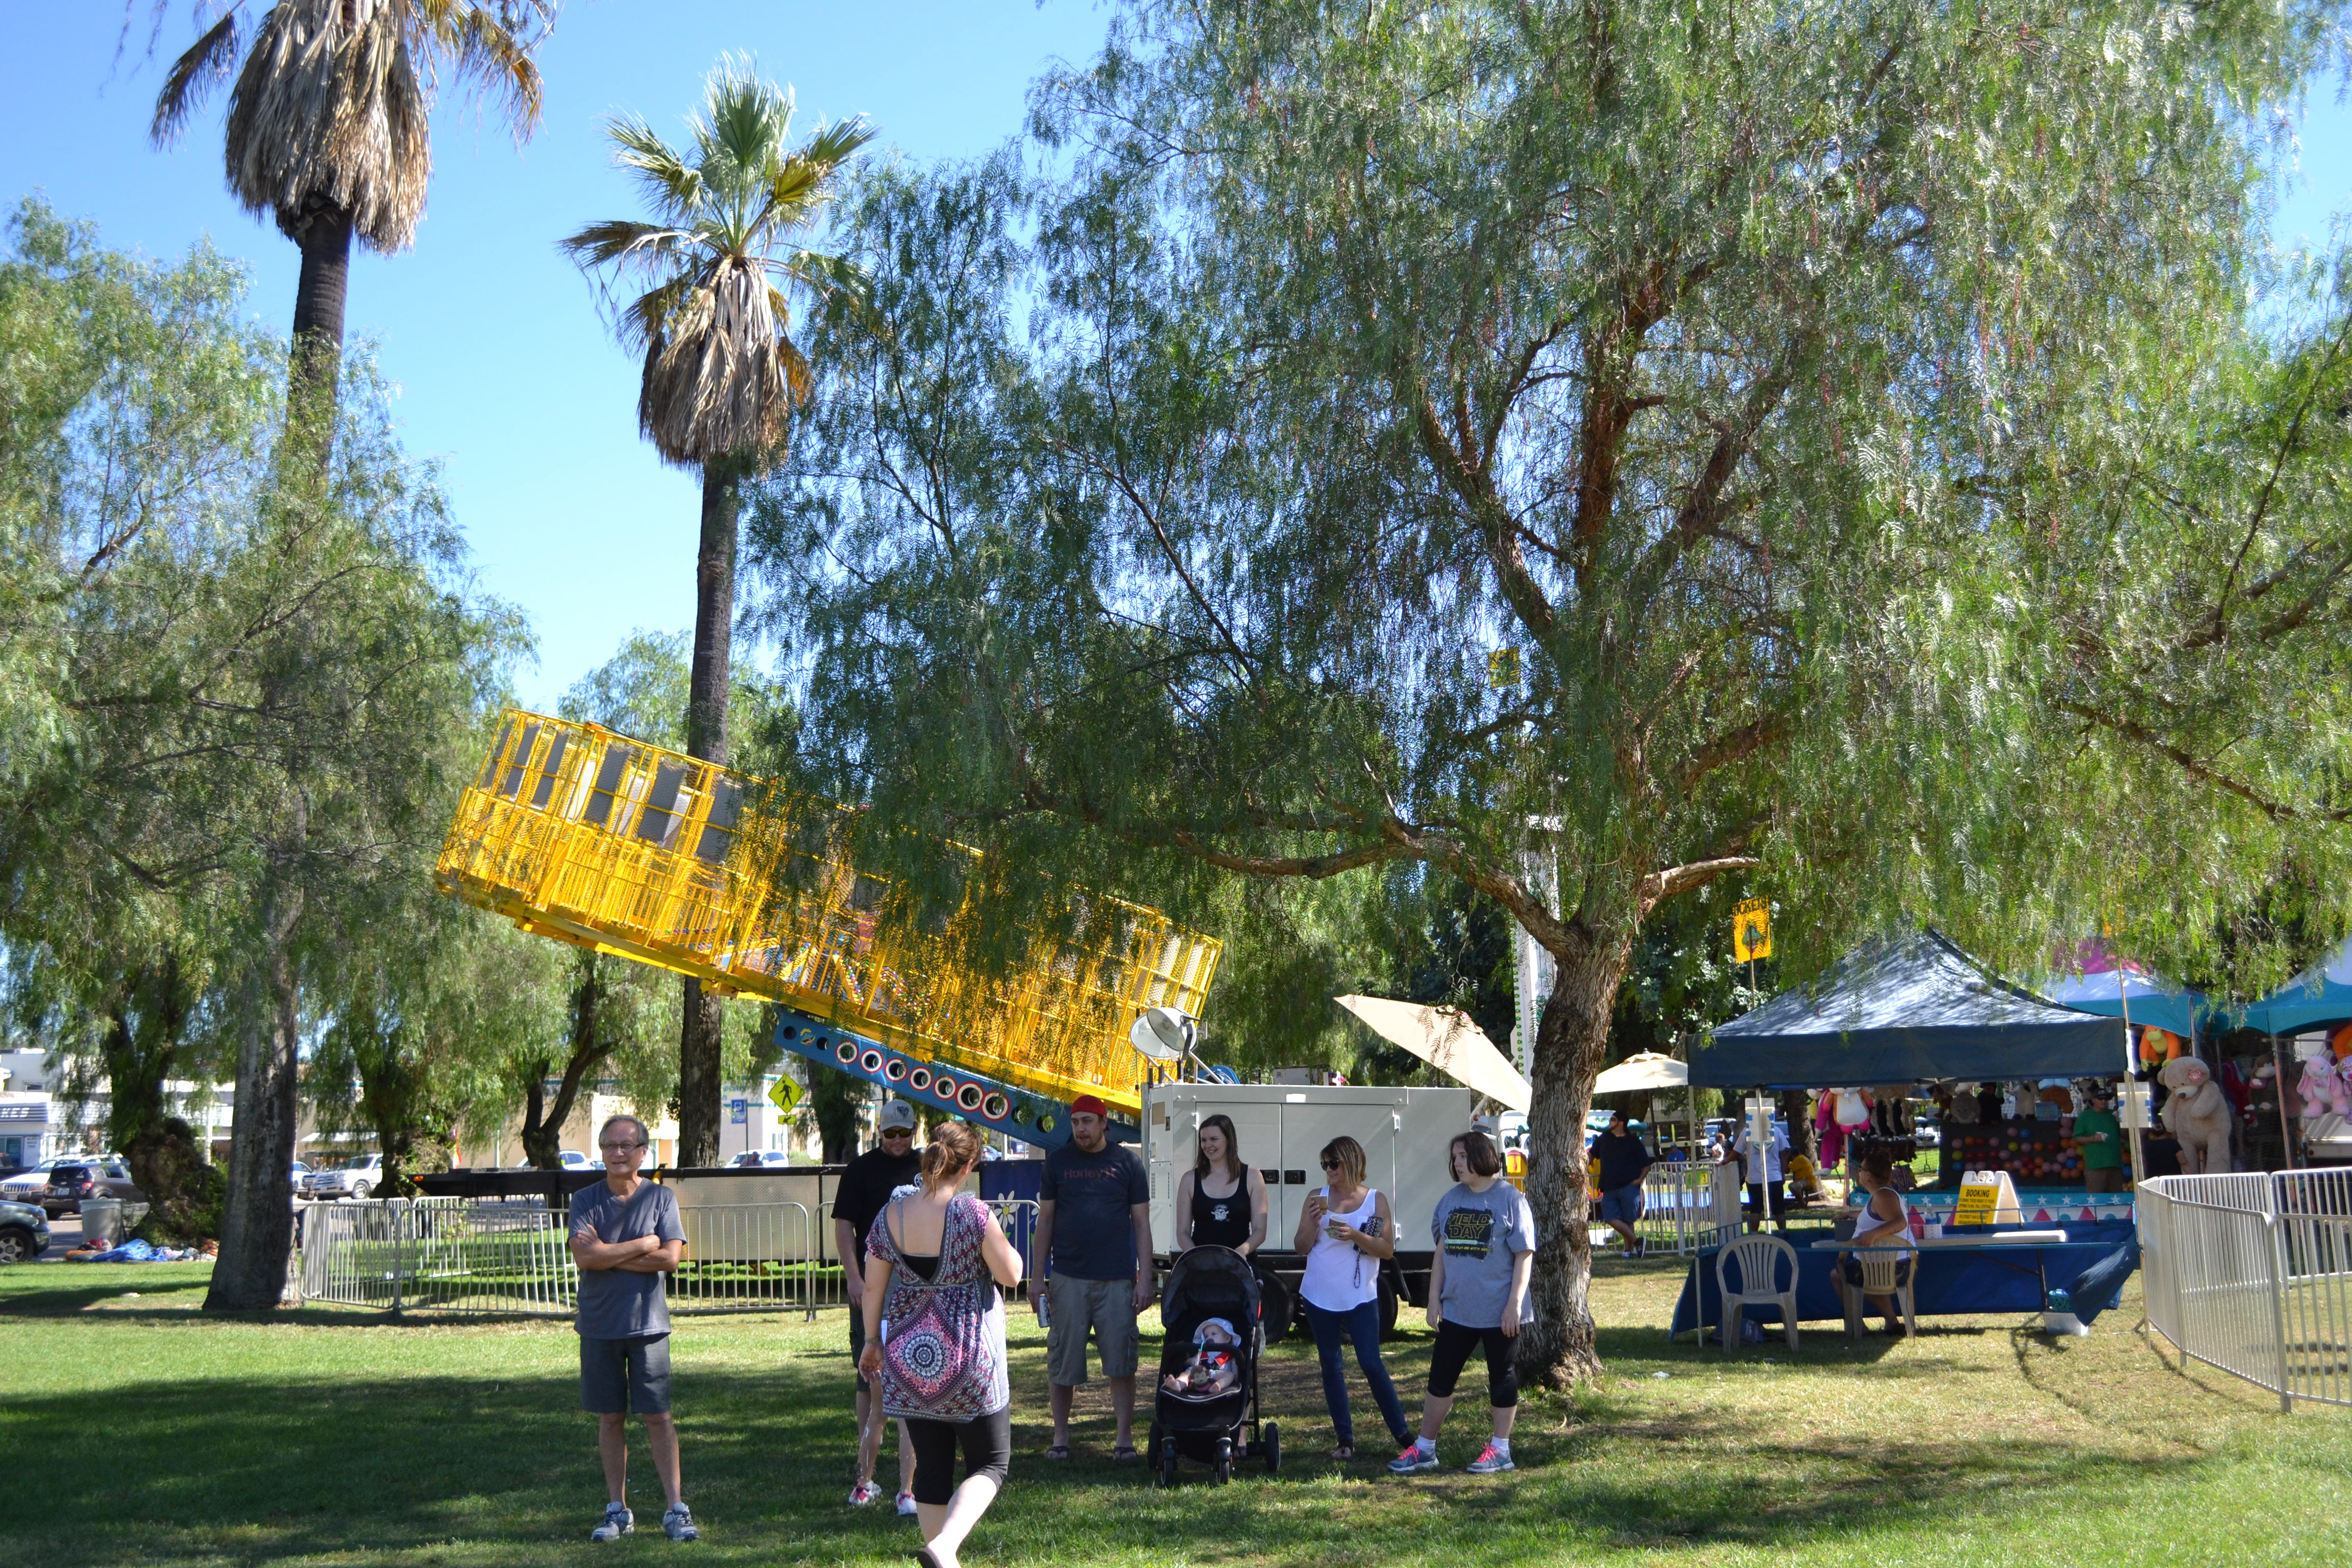 Grape Day Discovery Festival - Top Things to Do in San Diego